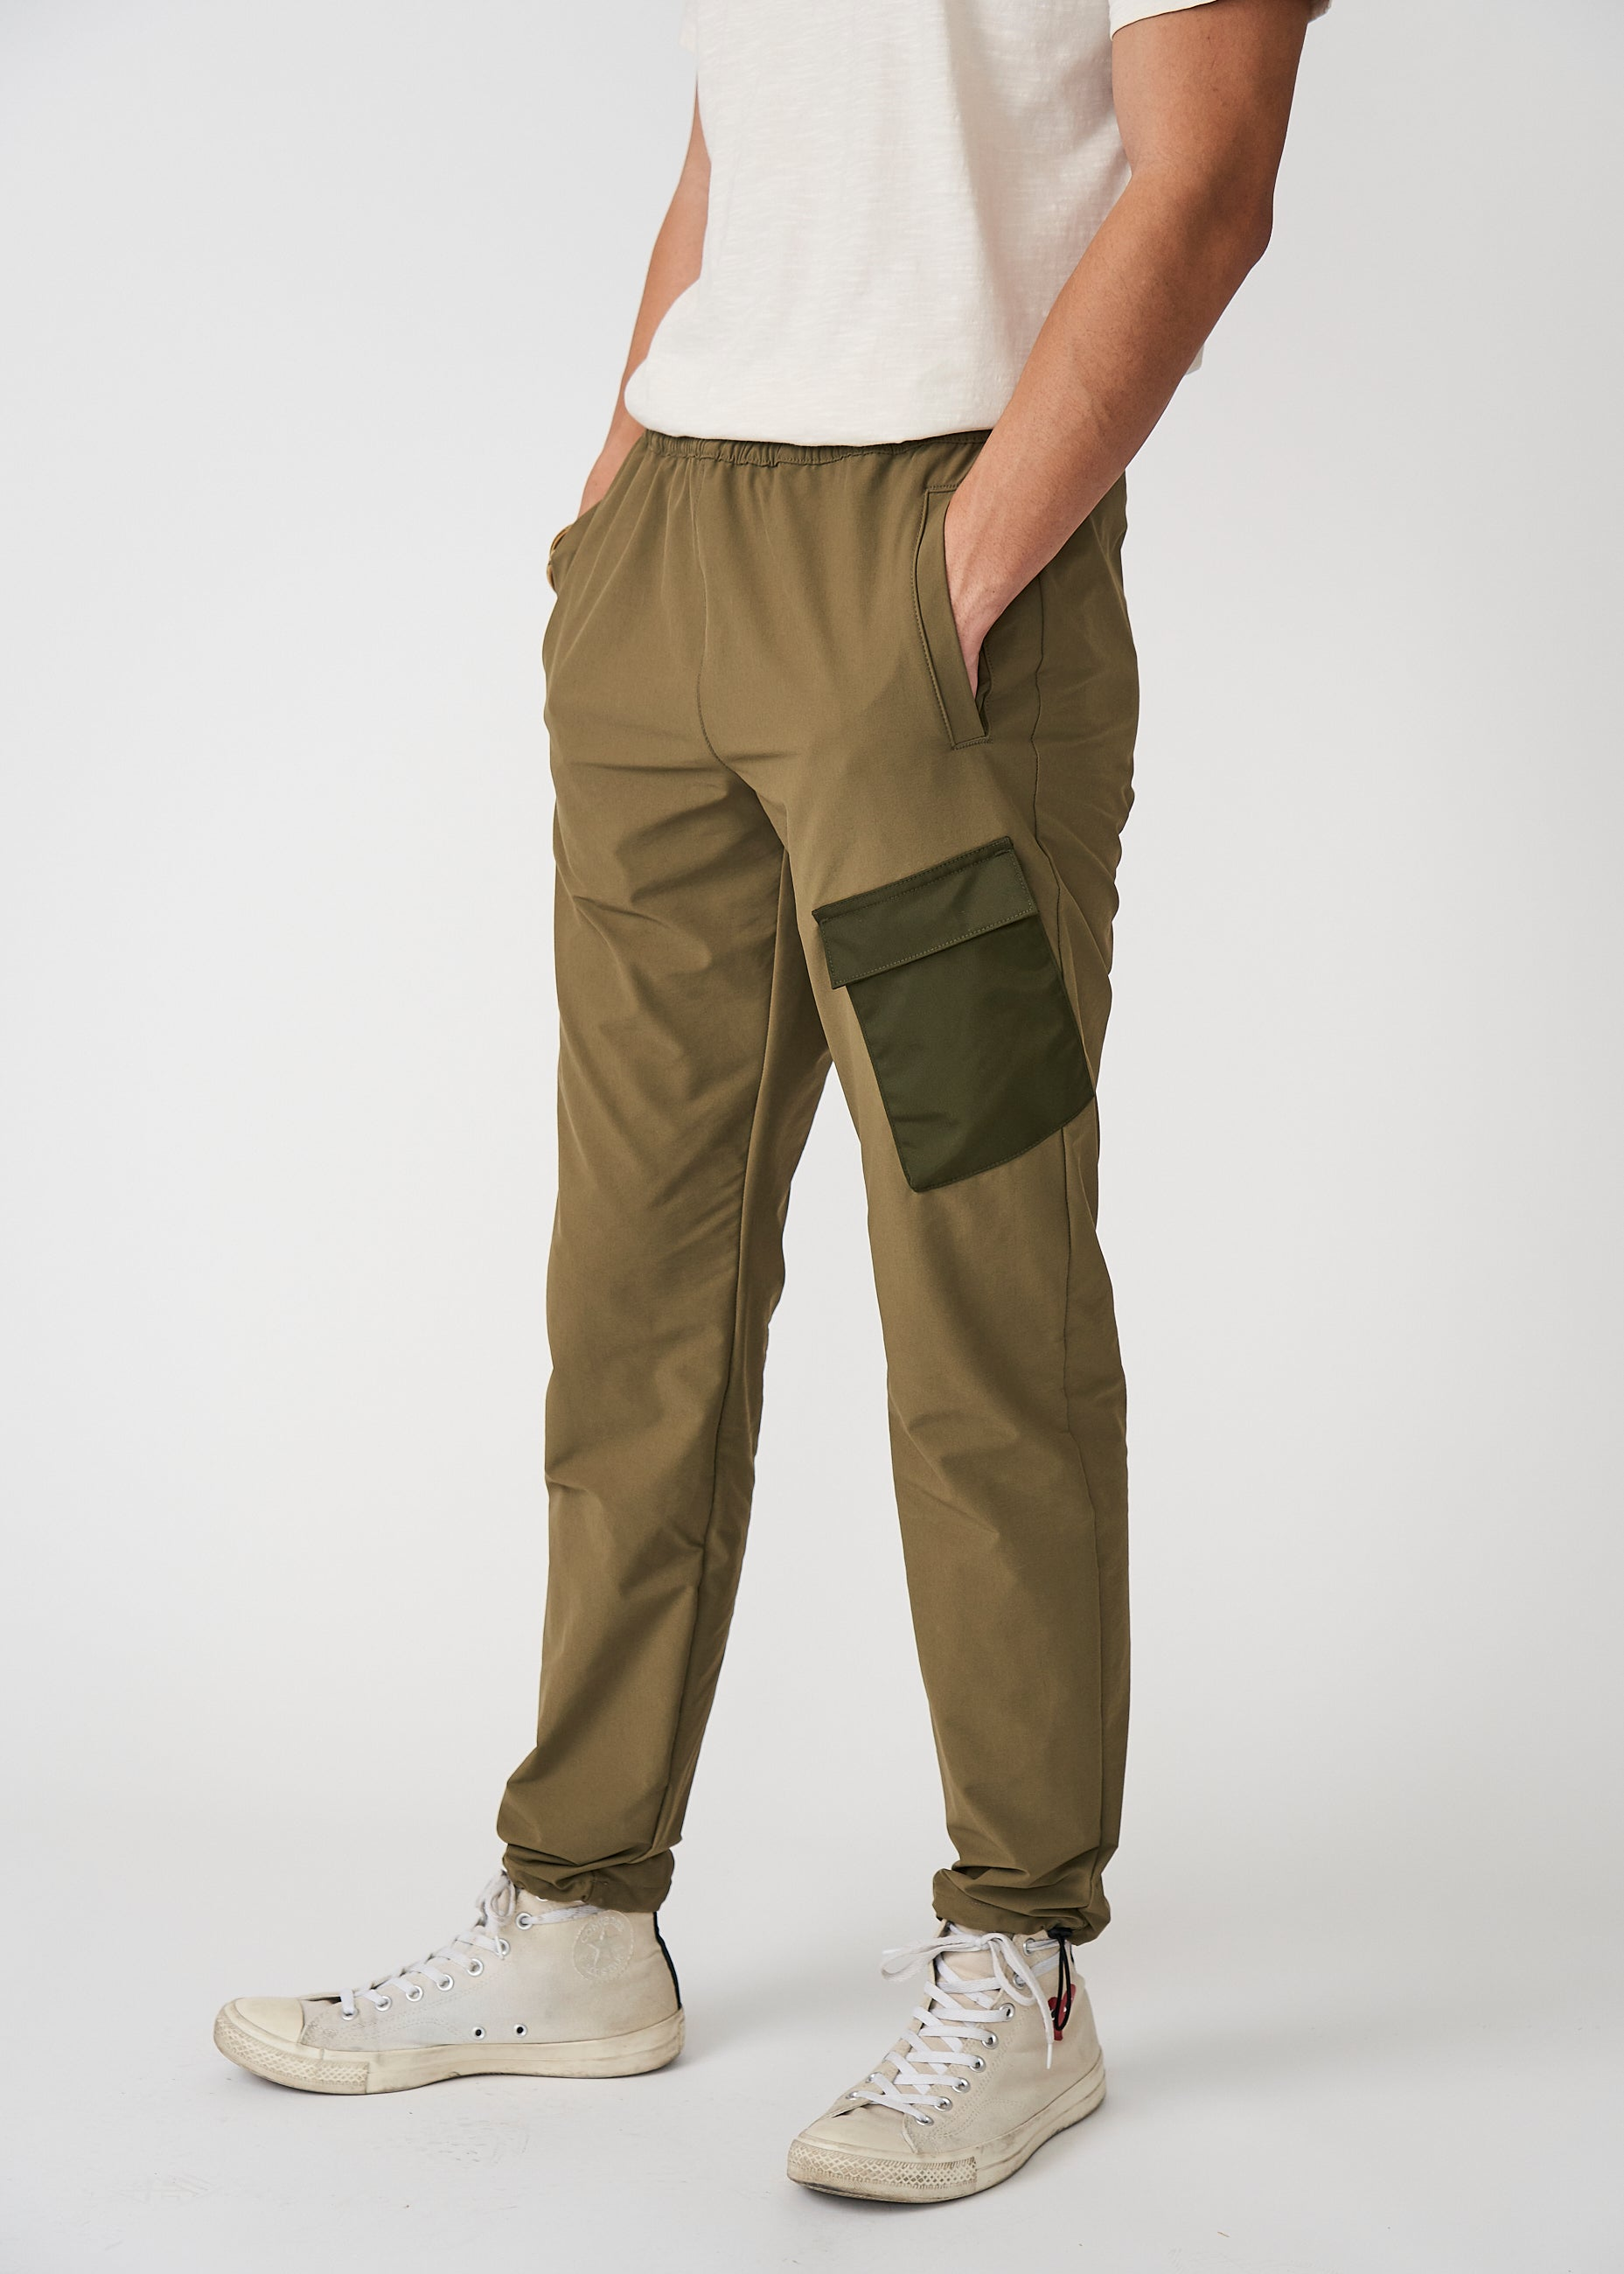 The W—Co. Technical Pant